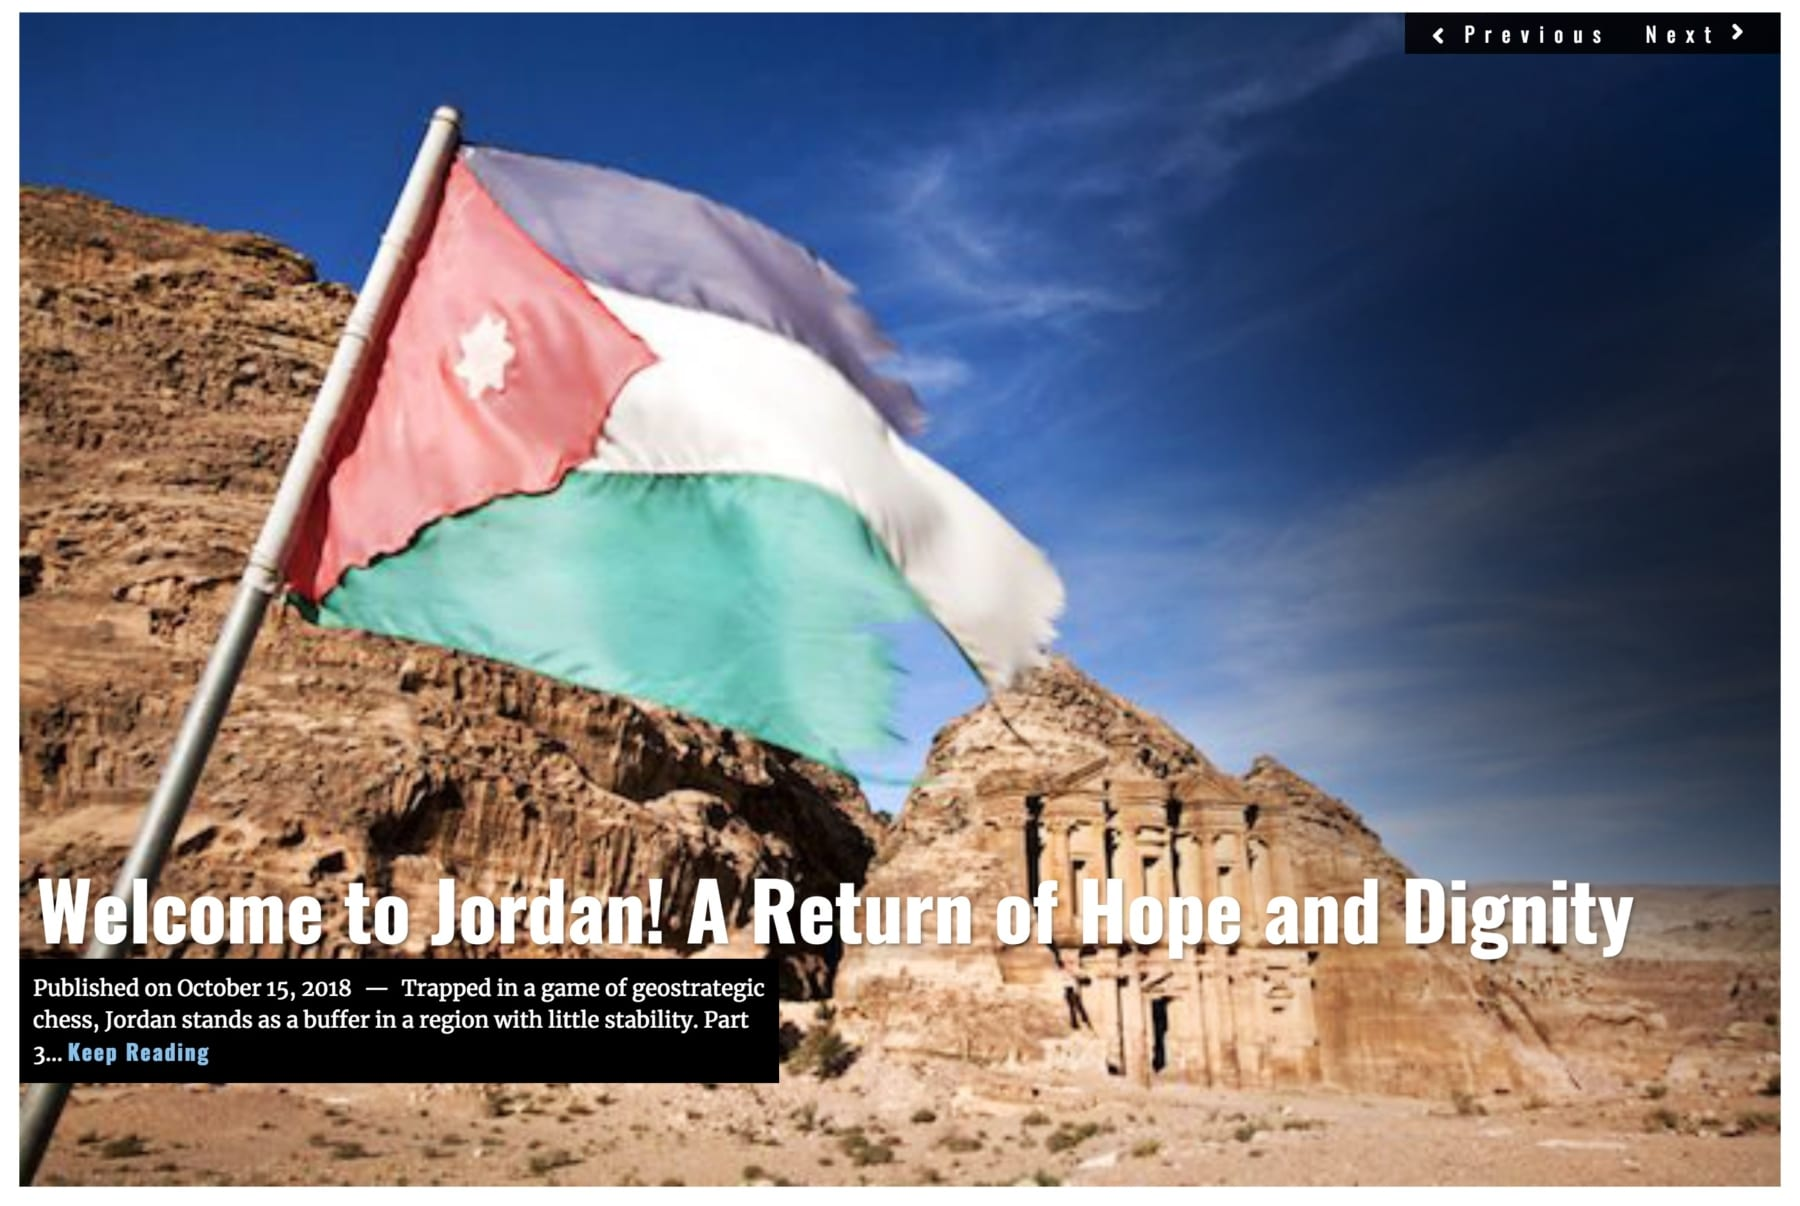 Image Lima Charlie News Headline Welcome to Jordan Part 3 OCT 15 2018